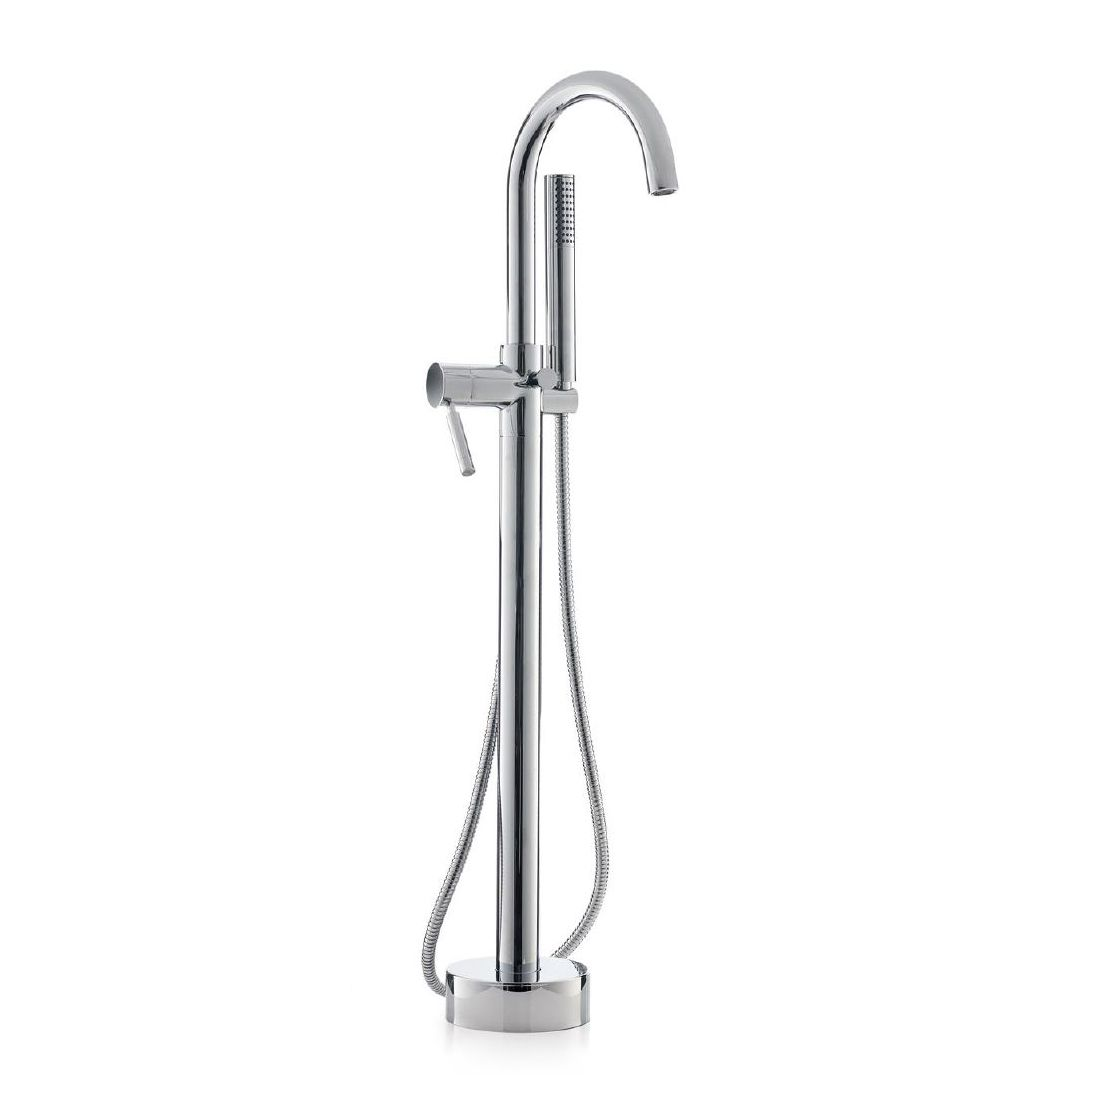 Cheviot 7550 CONTEMPORARY Free Standing Bathtub Filler with Hand ...